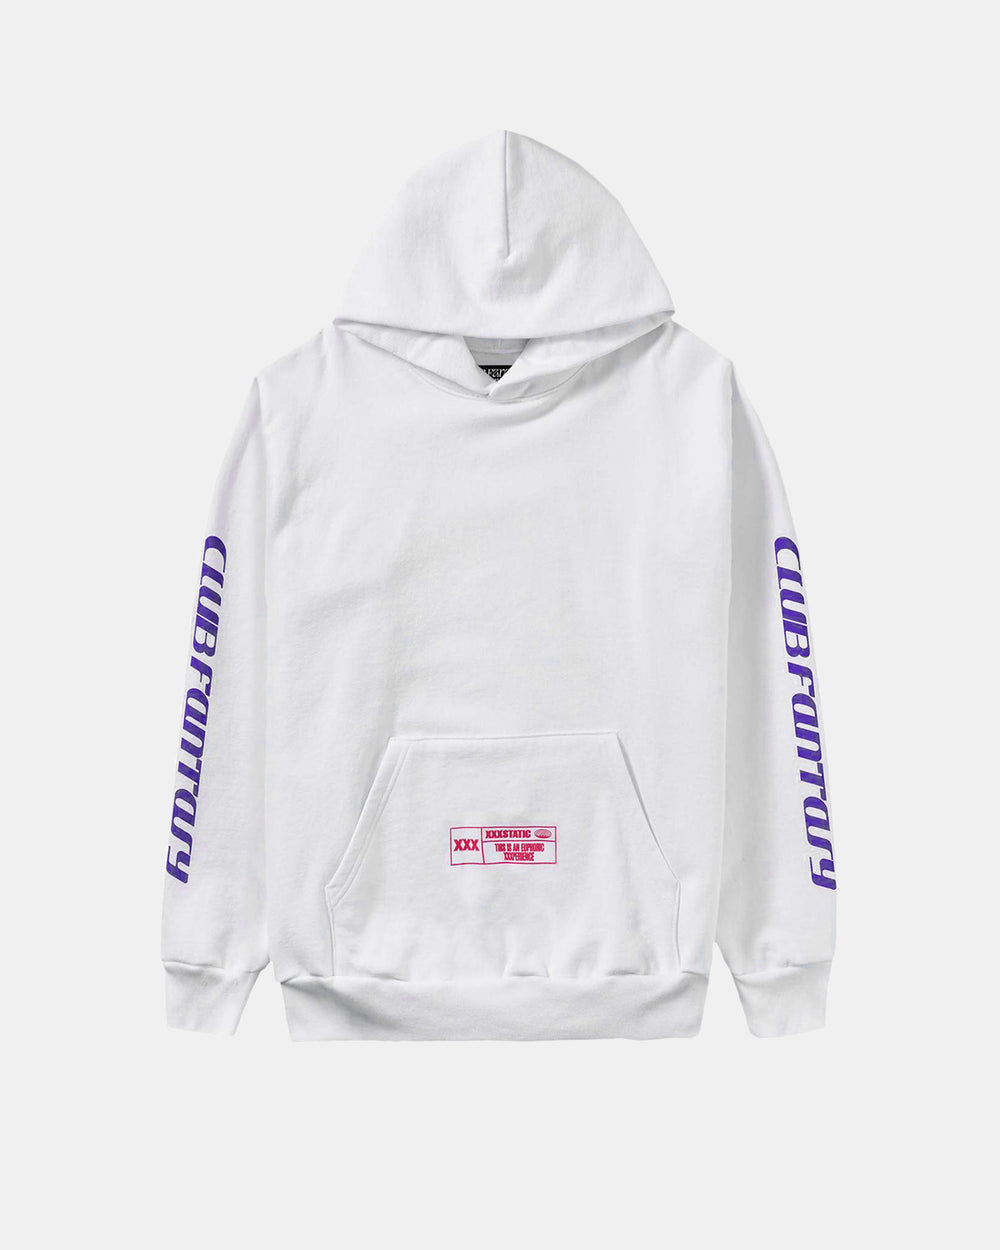 Club Fantasy - Endless Euphoria Hoodie (White)